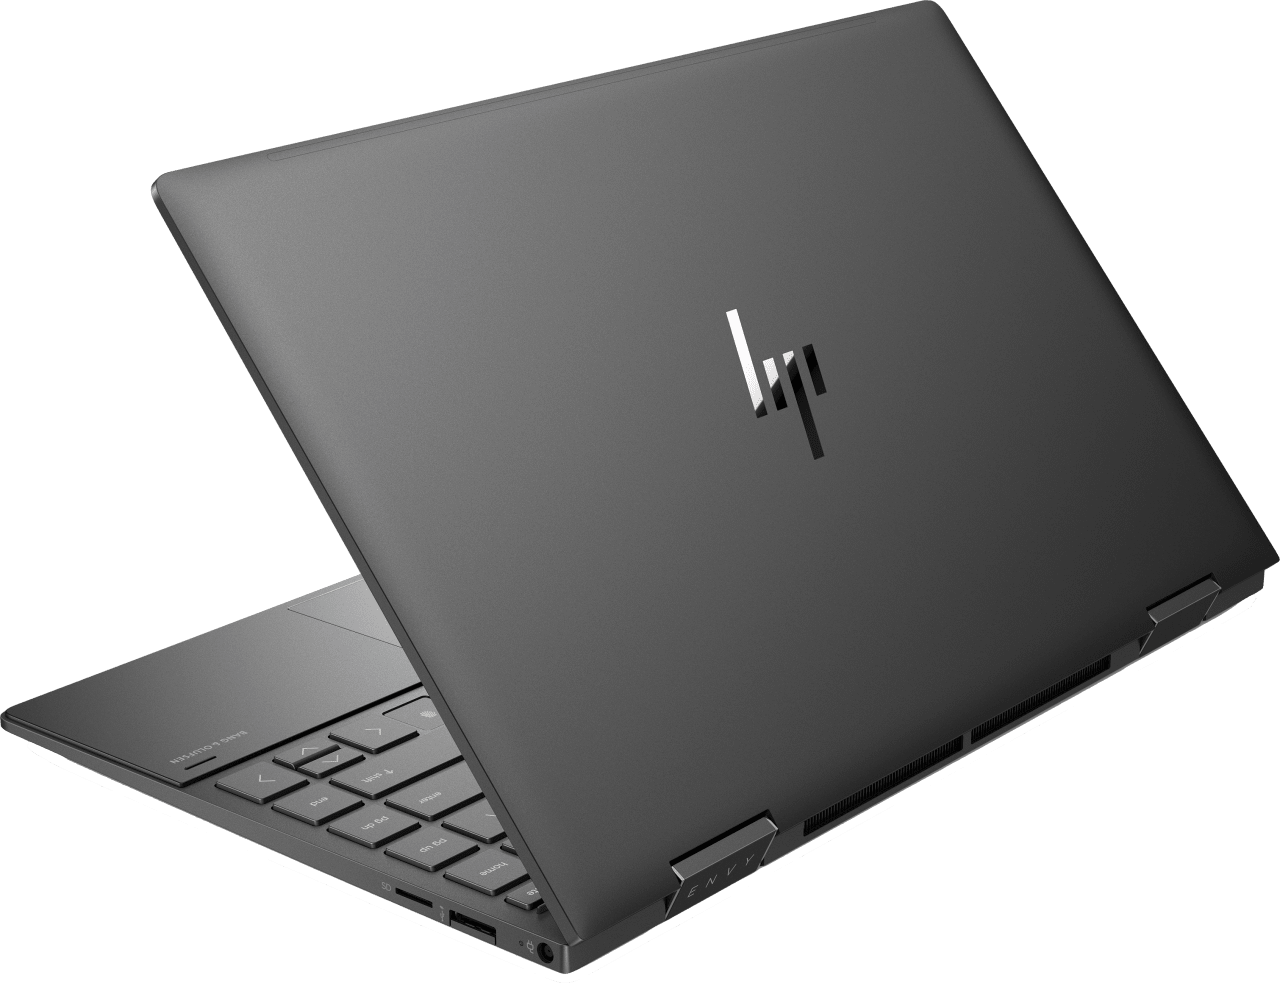 Nightfall Black HP Envy x360 13-ay0257ng.2